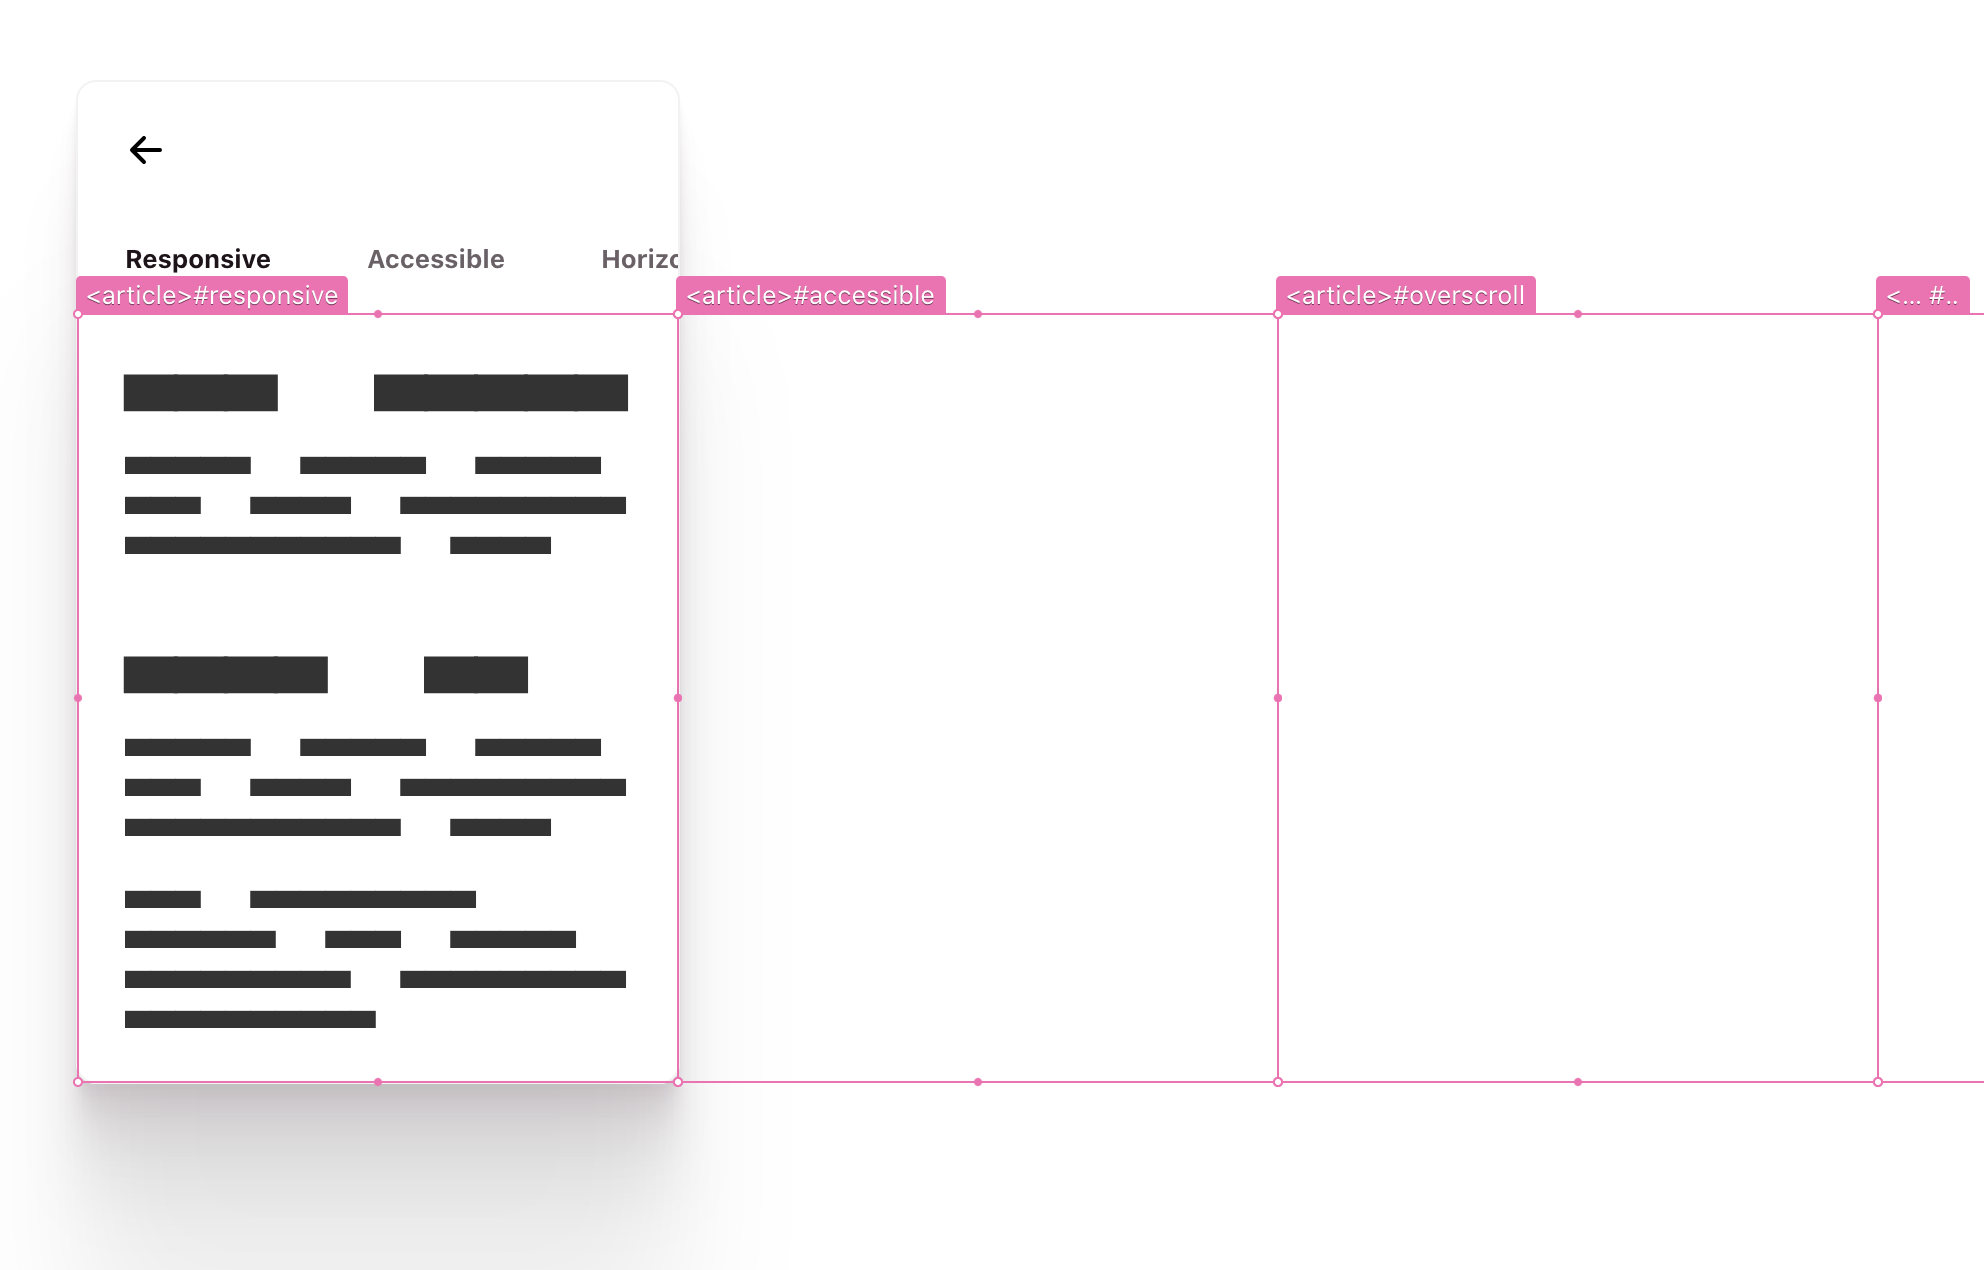 the article elements have hotpink overlays on them, outlining the space they take up in the component and where they overflow